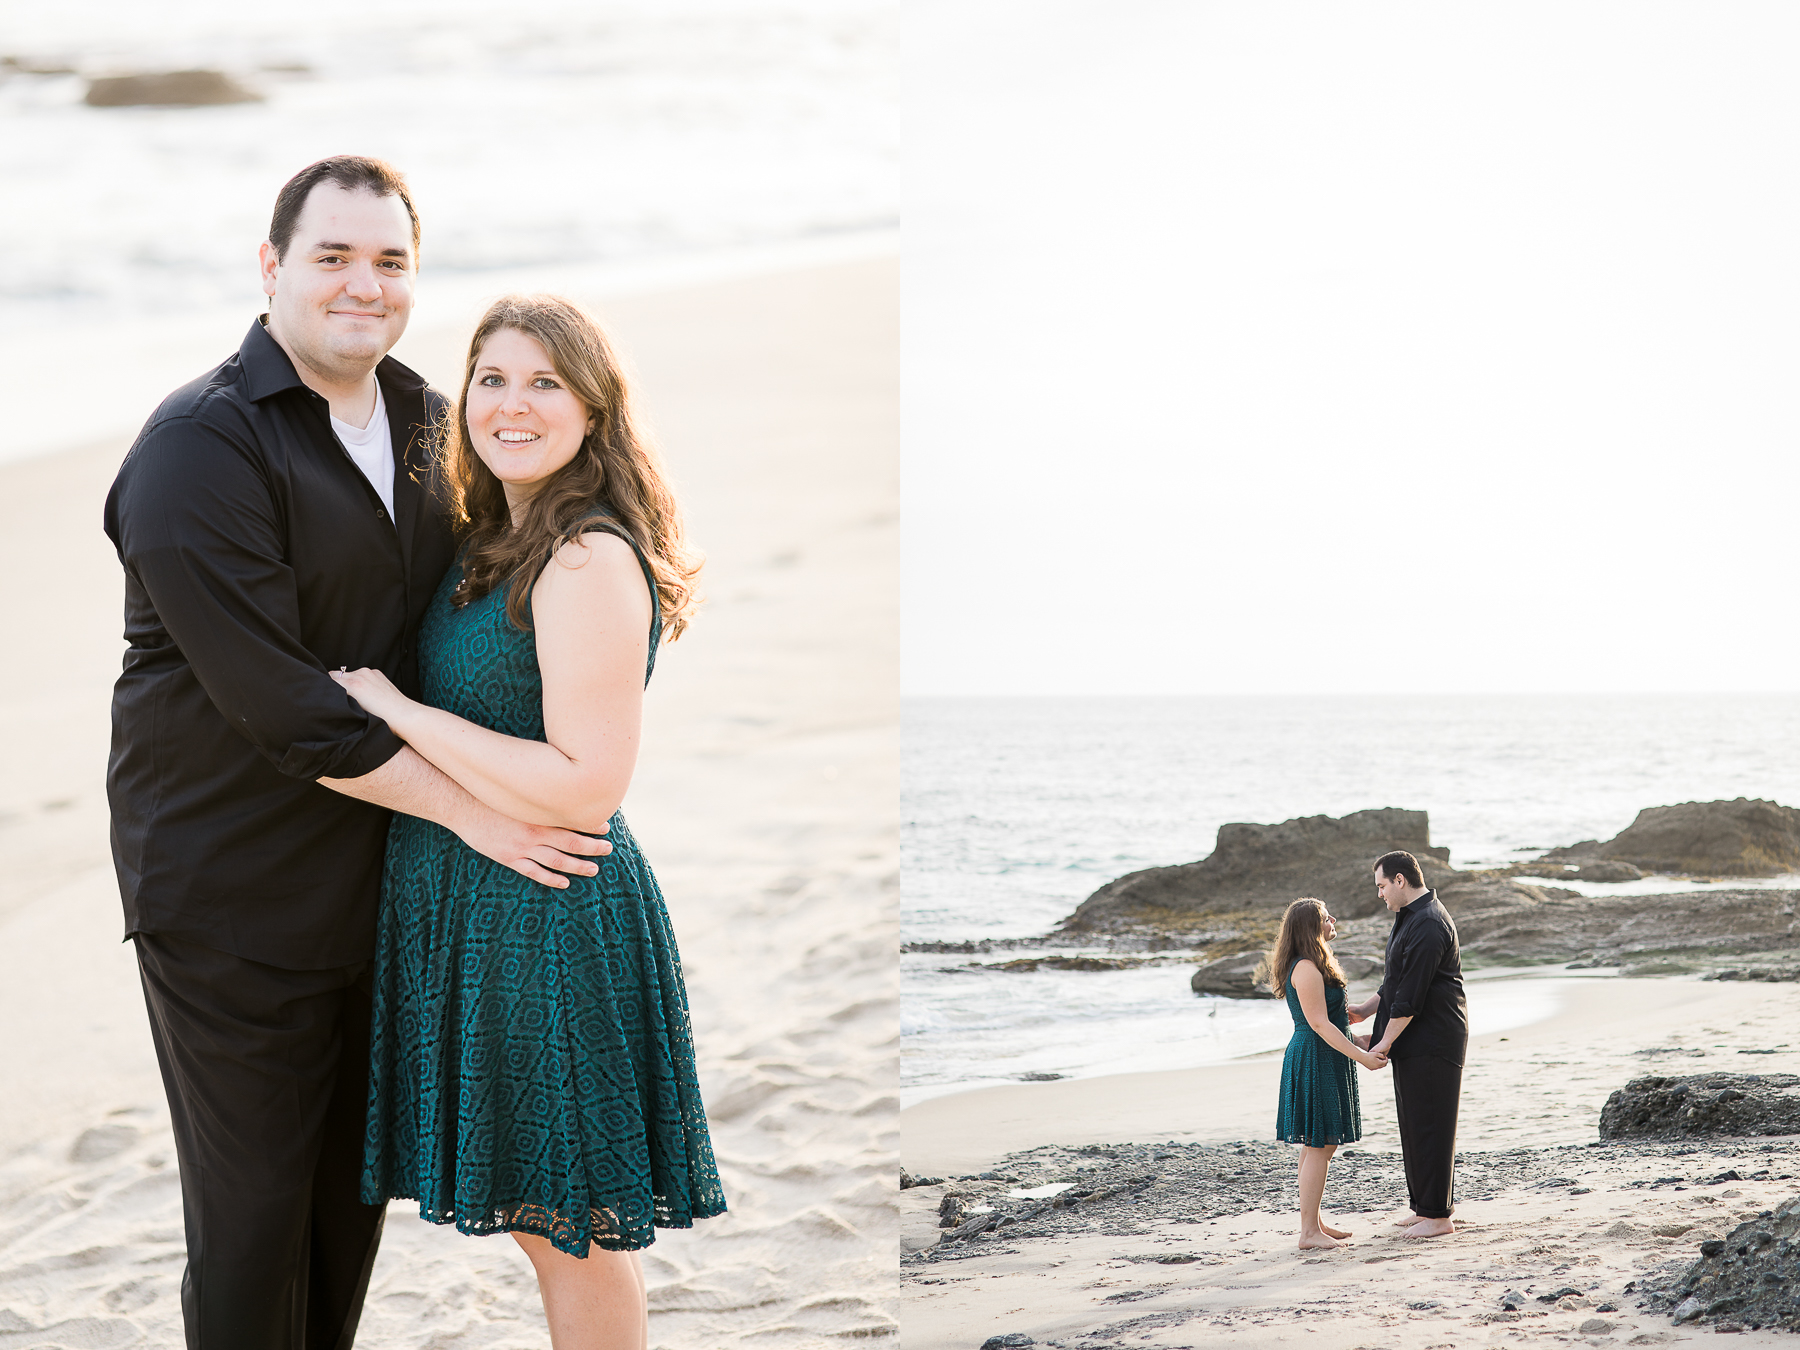 Sunset beach engagement photos by Megan Lee Photography